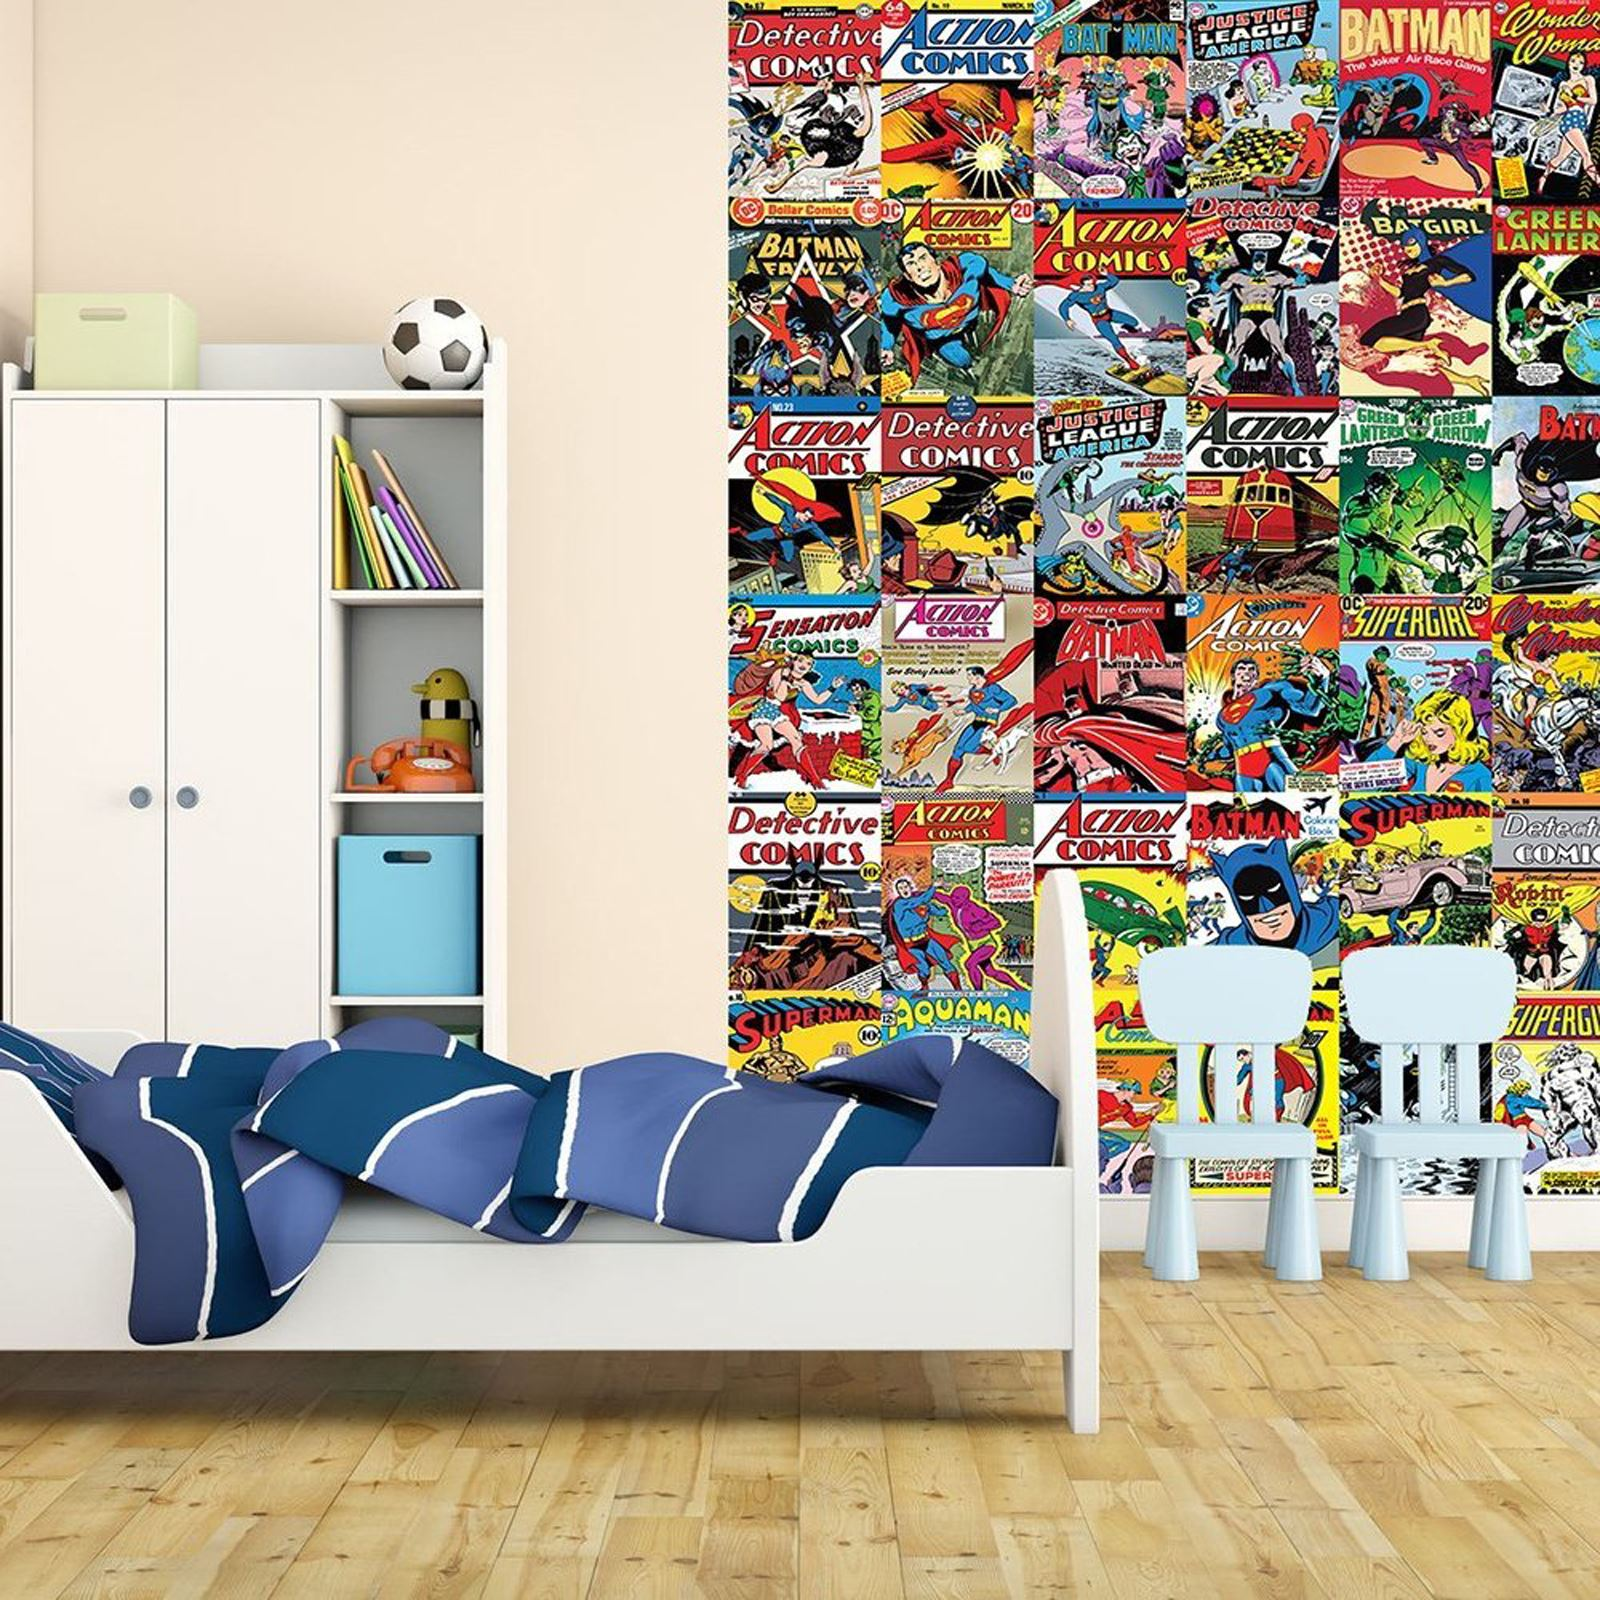 Marvel comics and avengers wallpaper wall murals d cor for Mural art designs for bedroom